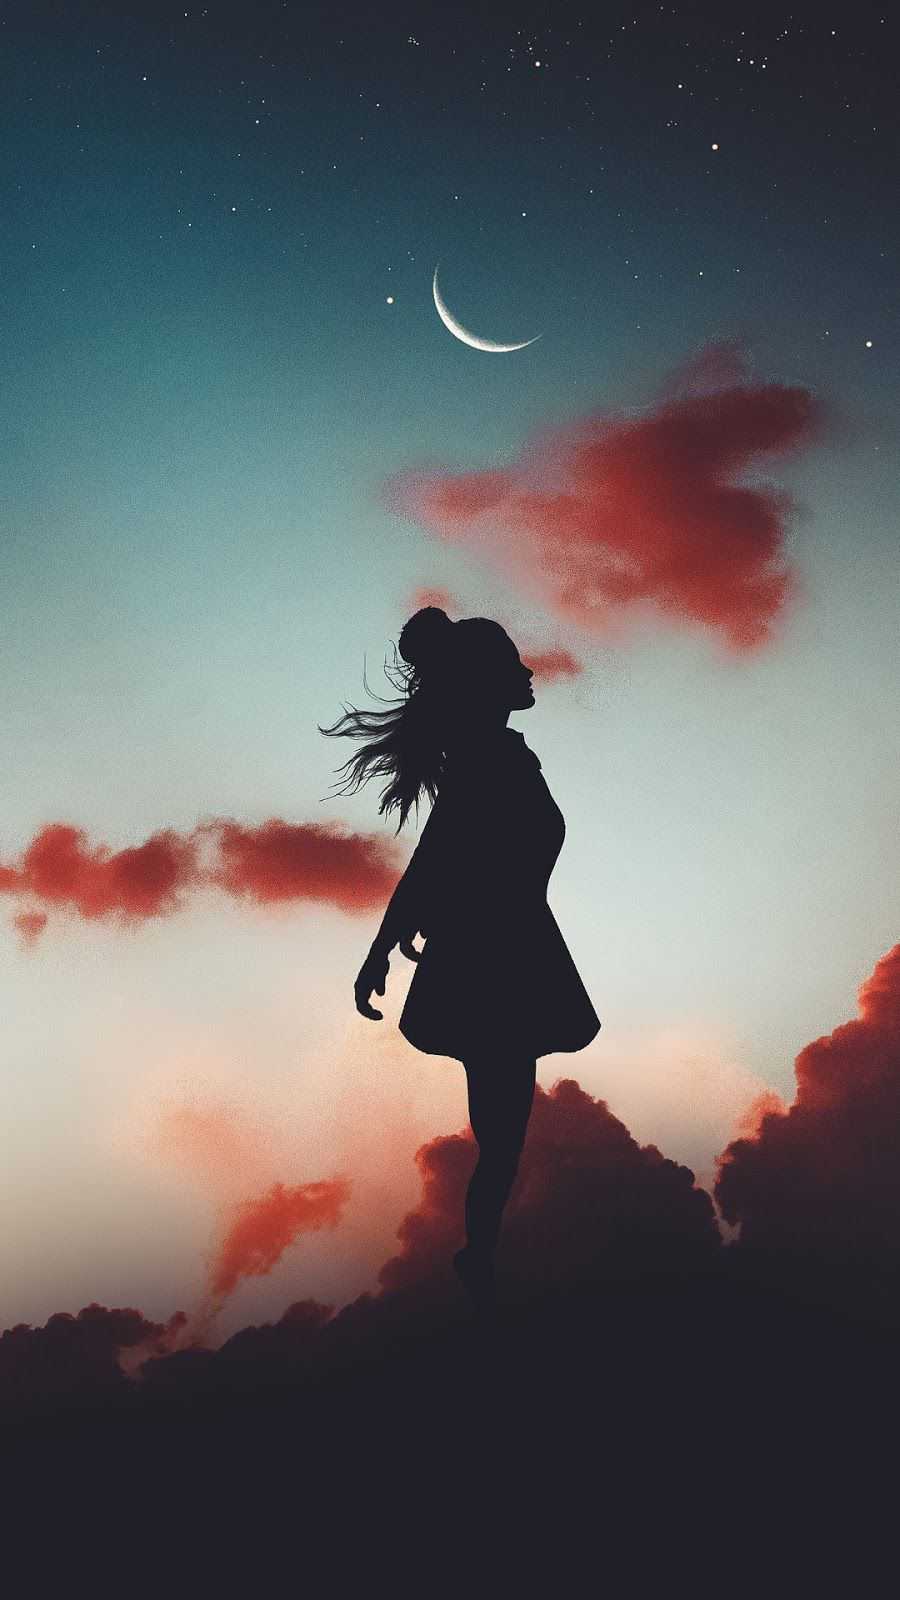 Levitate In The Sky Wallpaper Iphone Android Background Followme Silhouette Photography Aesthetic Wallpapers Beautiful Wallpapers